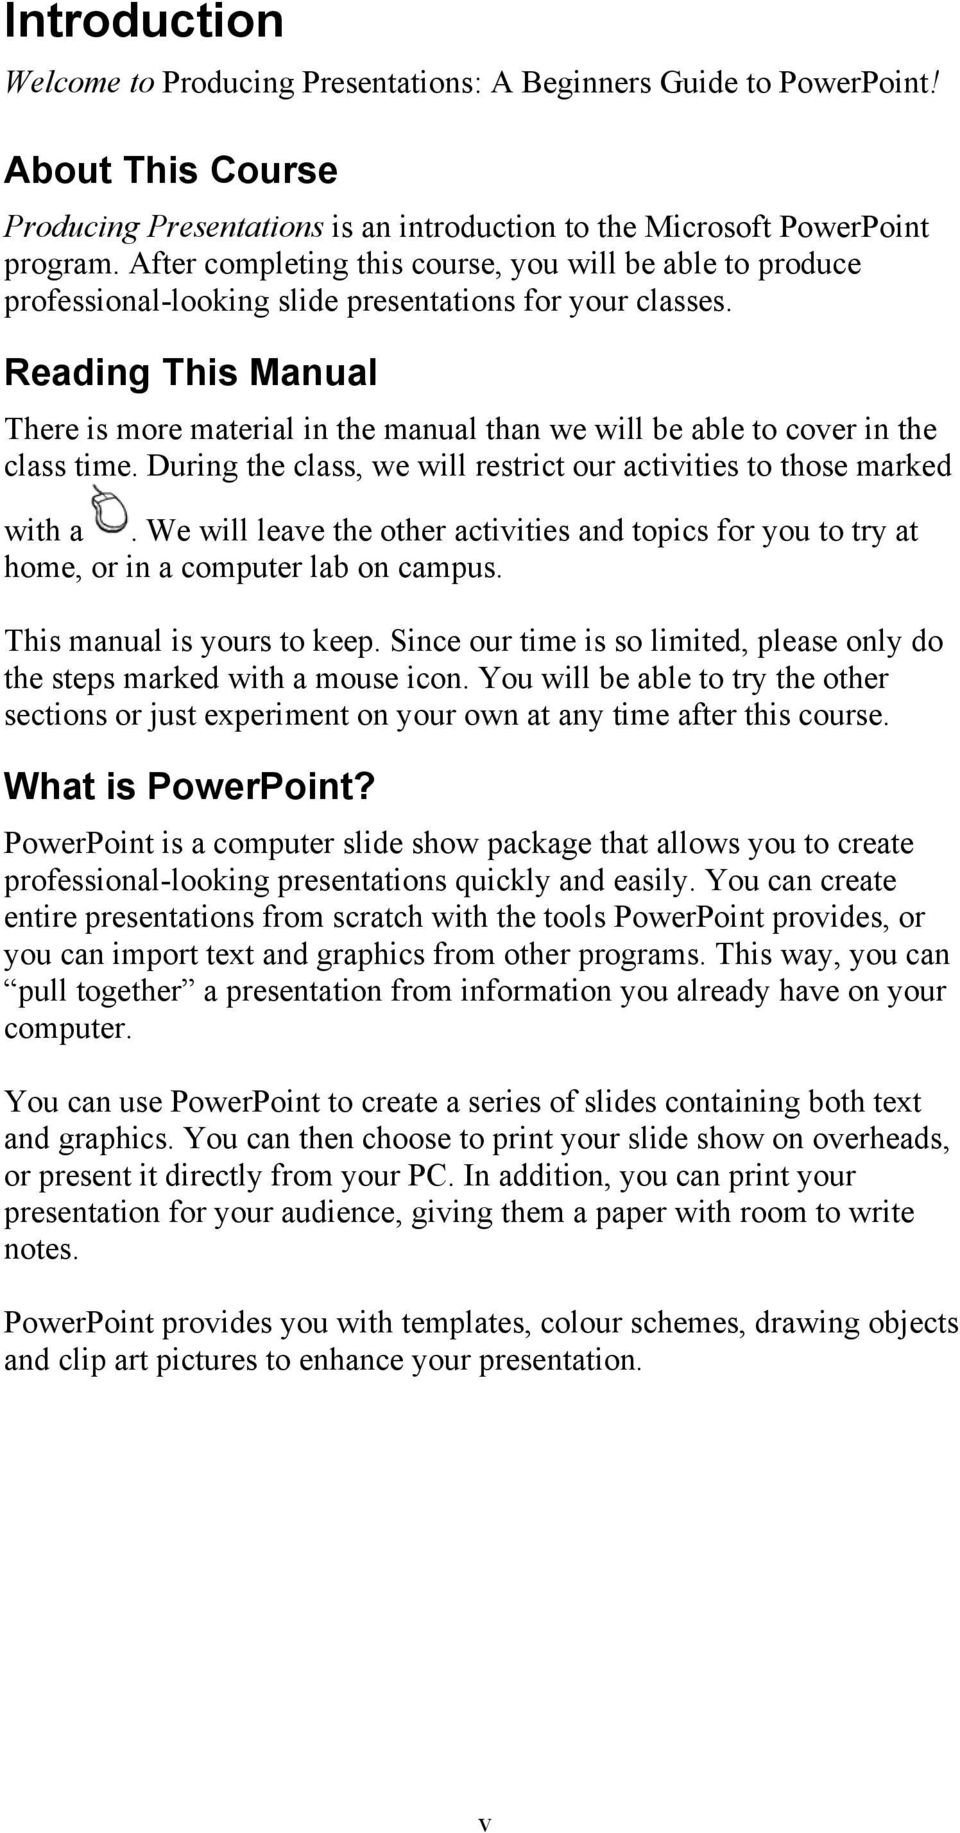 producing presentations a beginner s guide to powerpoint pdf